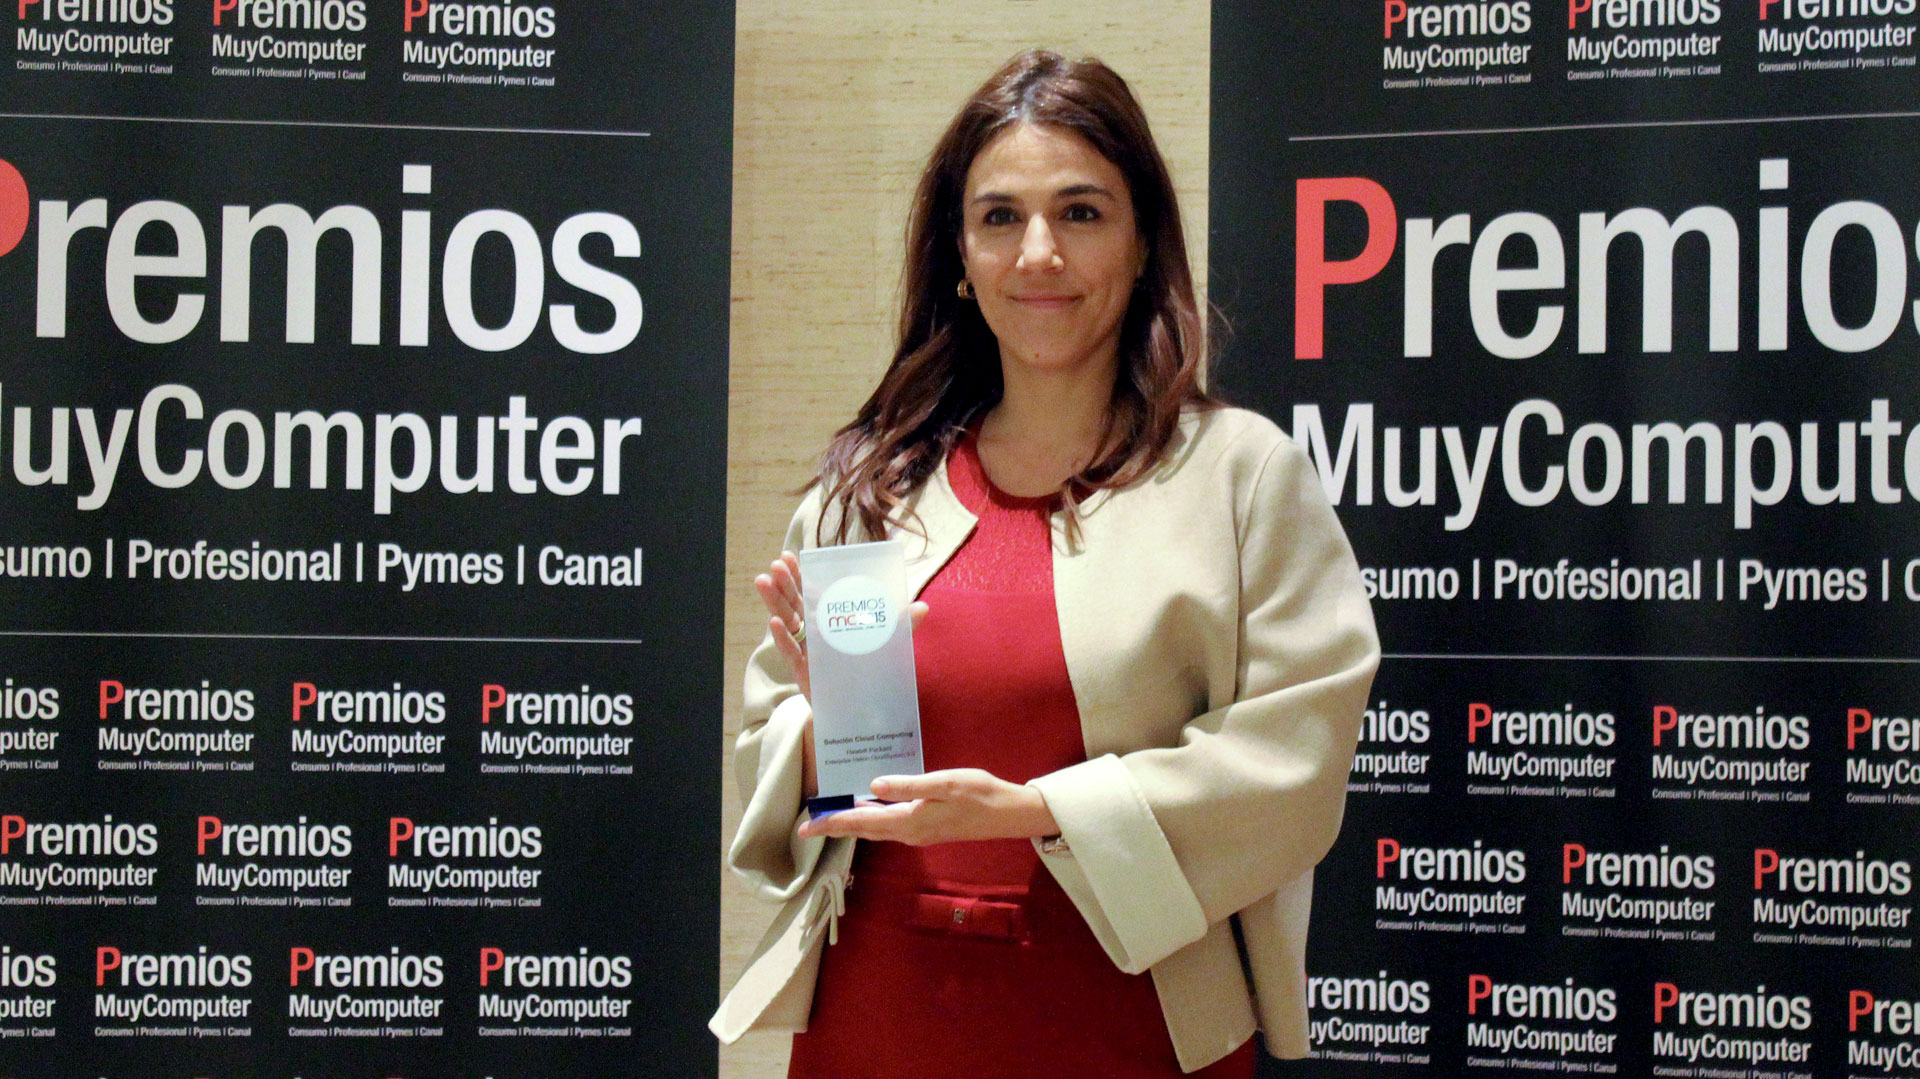 premios-mc2015-HPE-helion-cloud-system-9